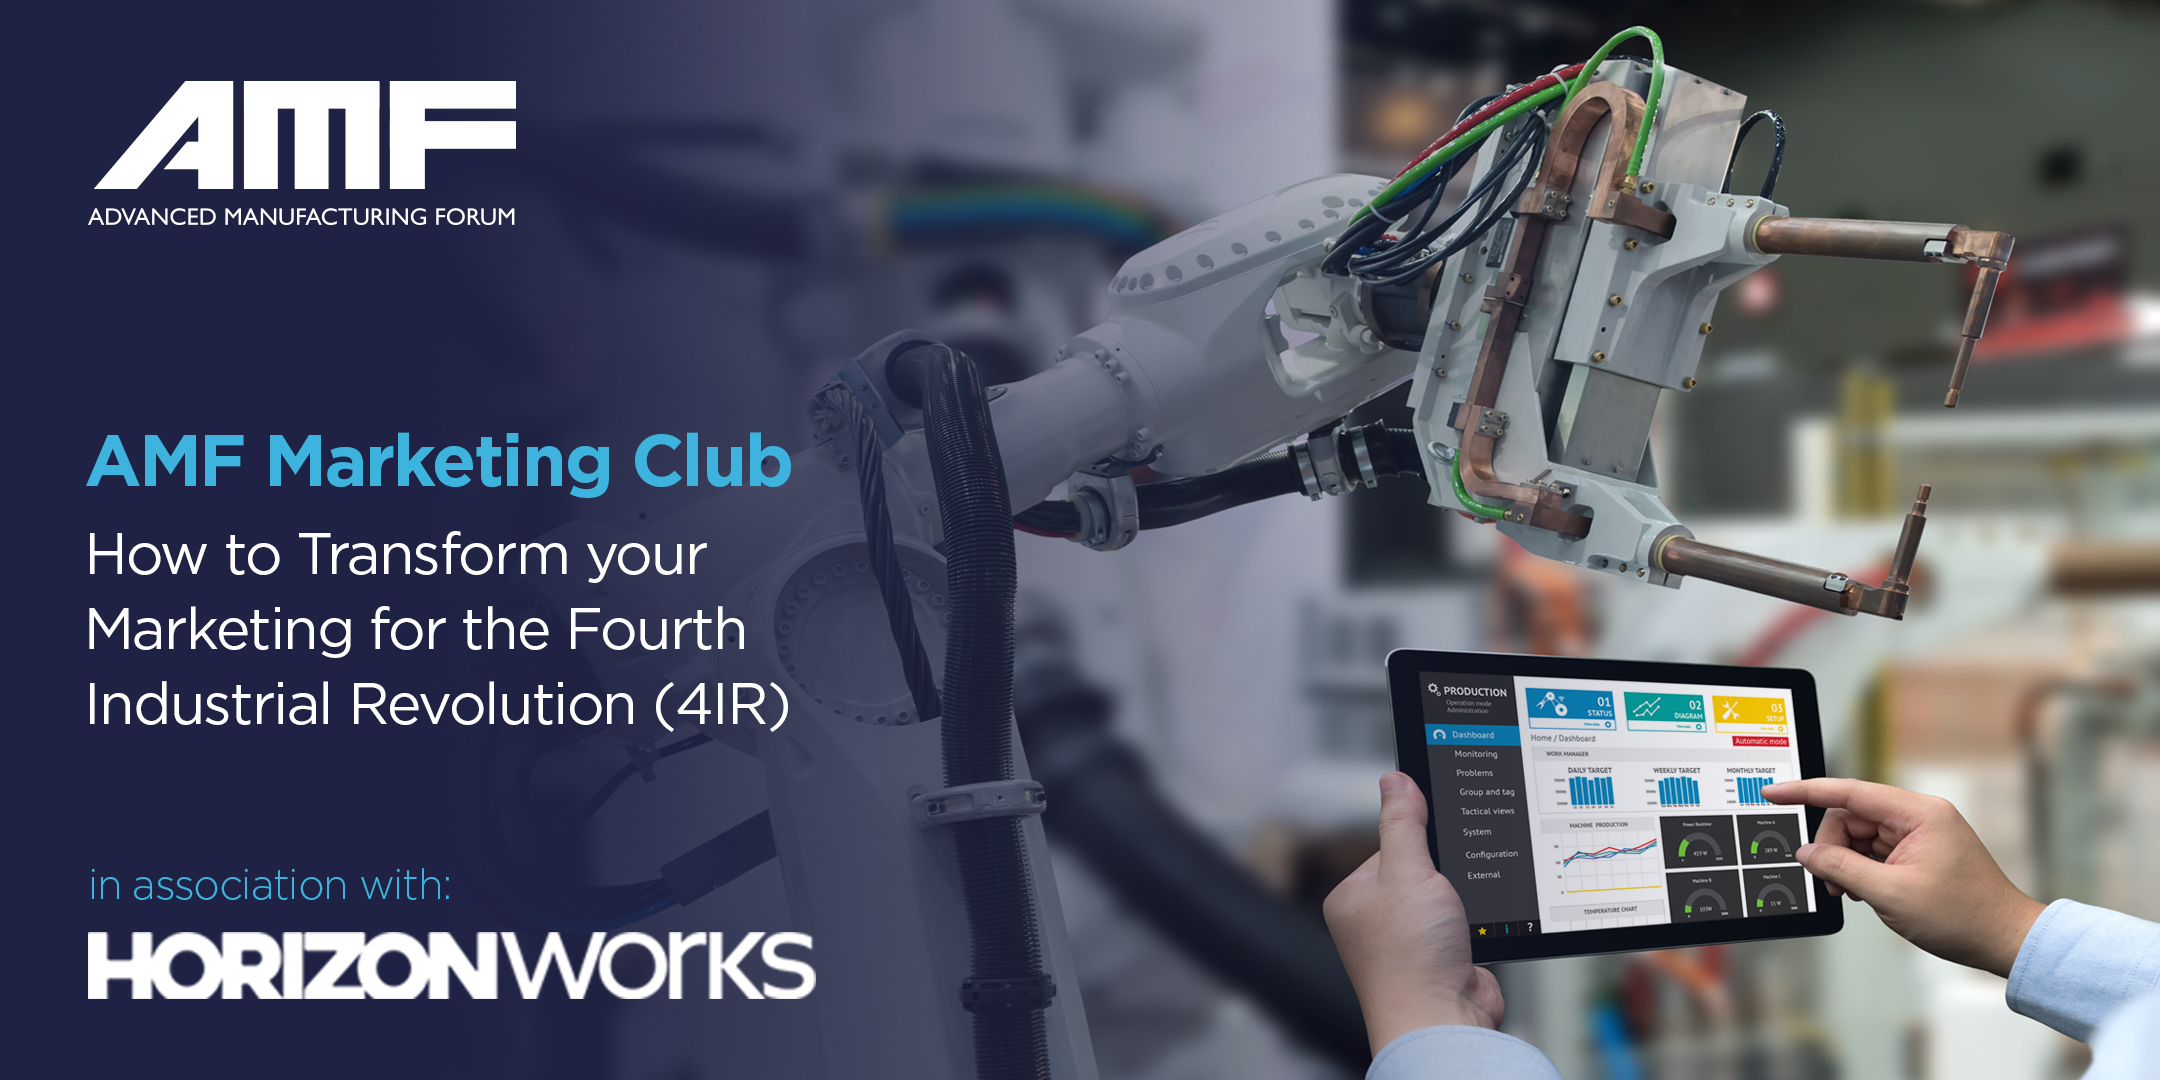 How to Transform your Marketing for the Fourth Industrial Revolution (4IR)